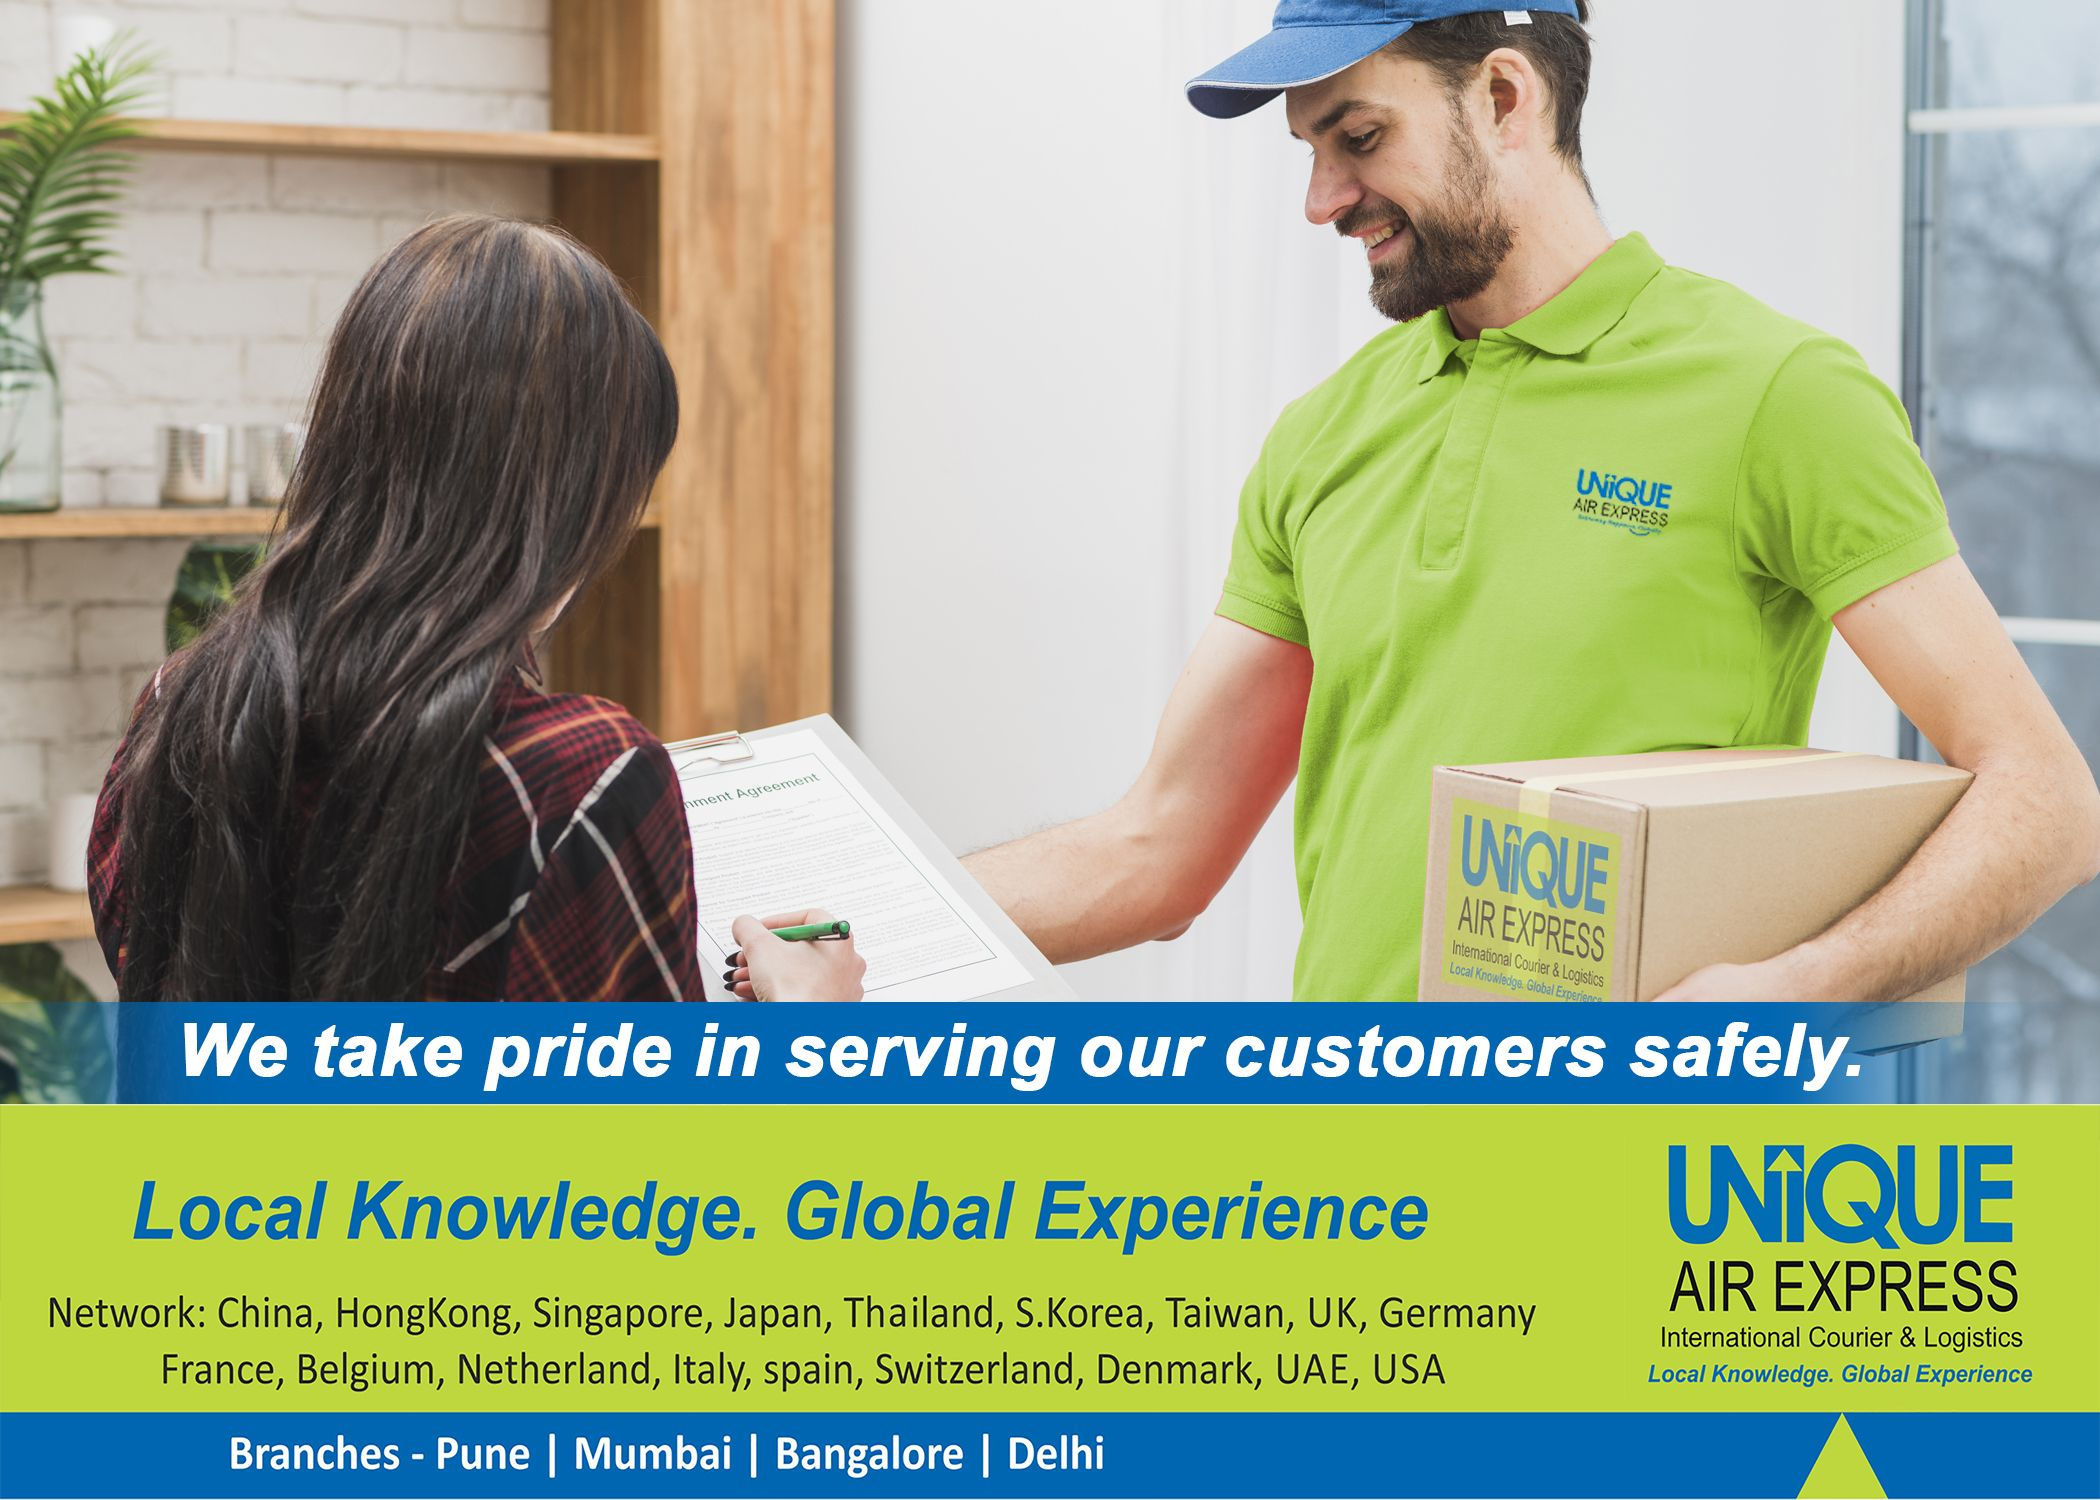 Unique Air Express takes pride in serving our customers